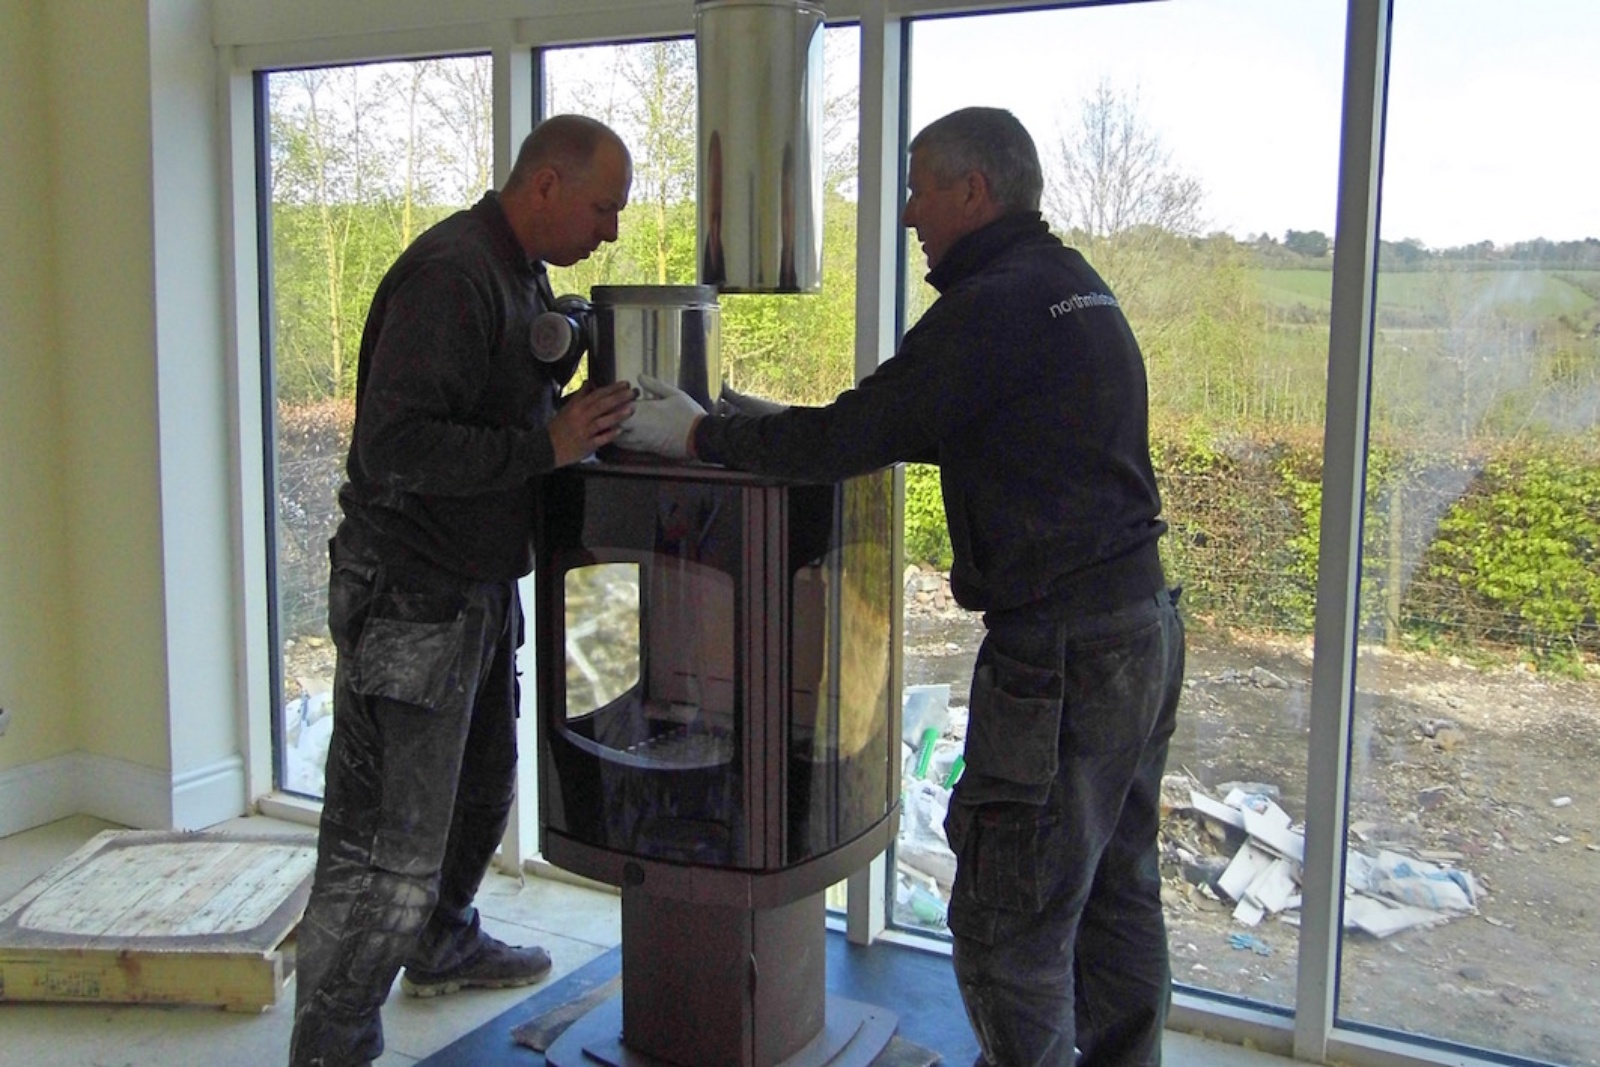 Careful planning makes installation straightforward for our experienced engineers